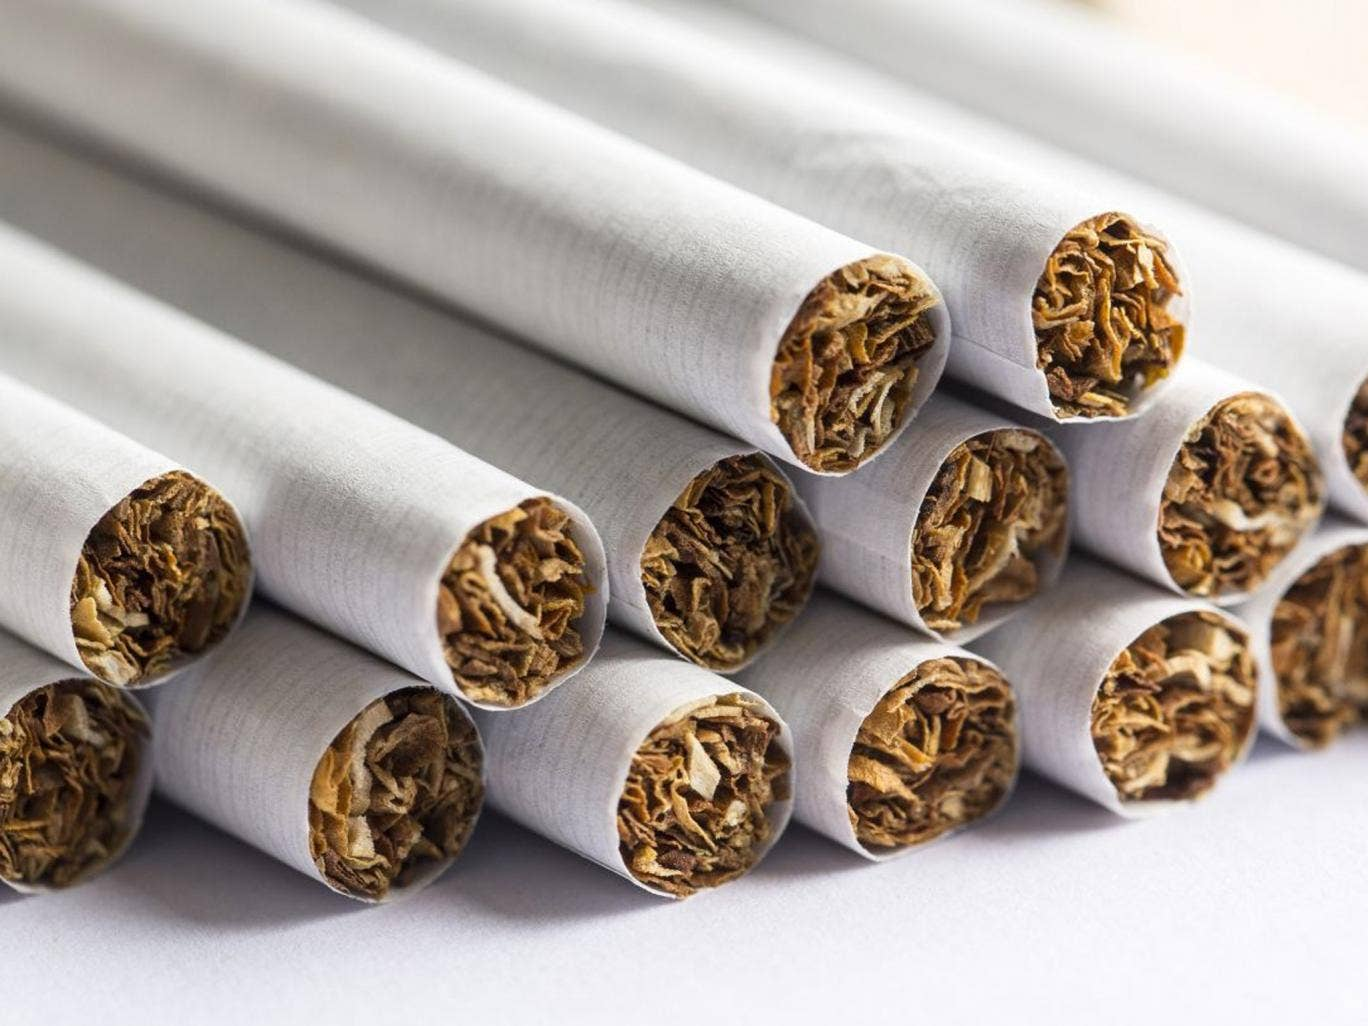 No Tobacco Day saw a range of new initiatives to prevent people smoking around the world